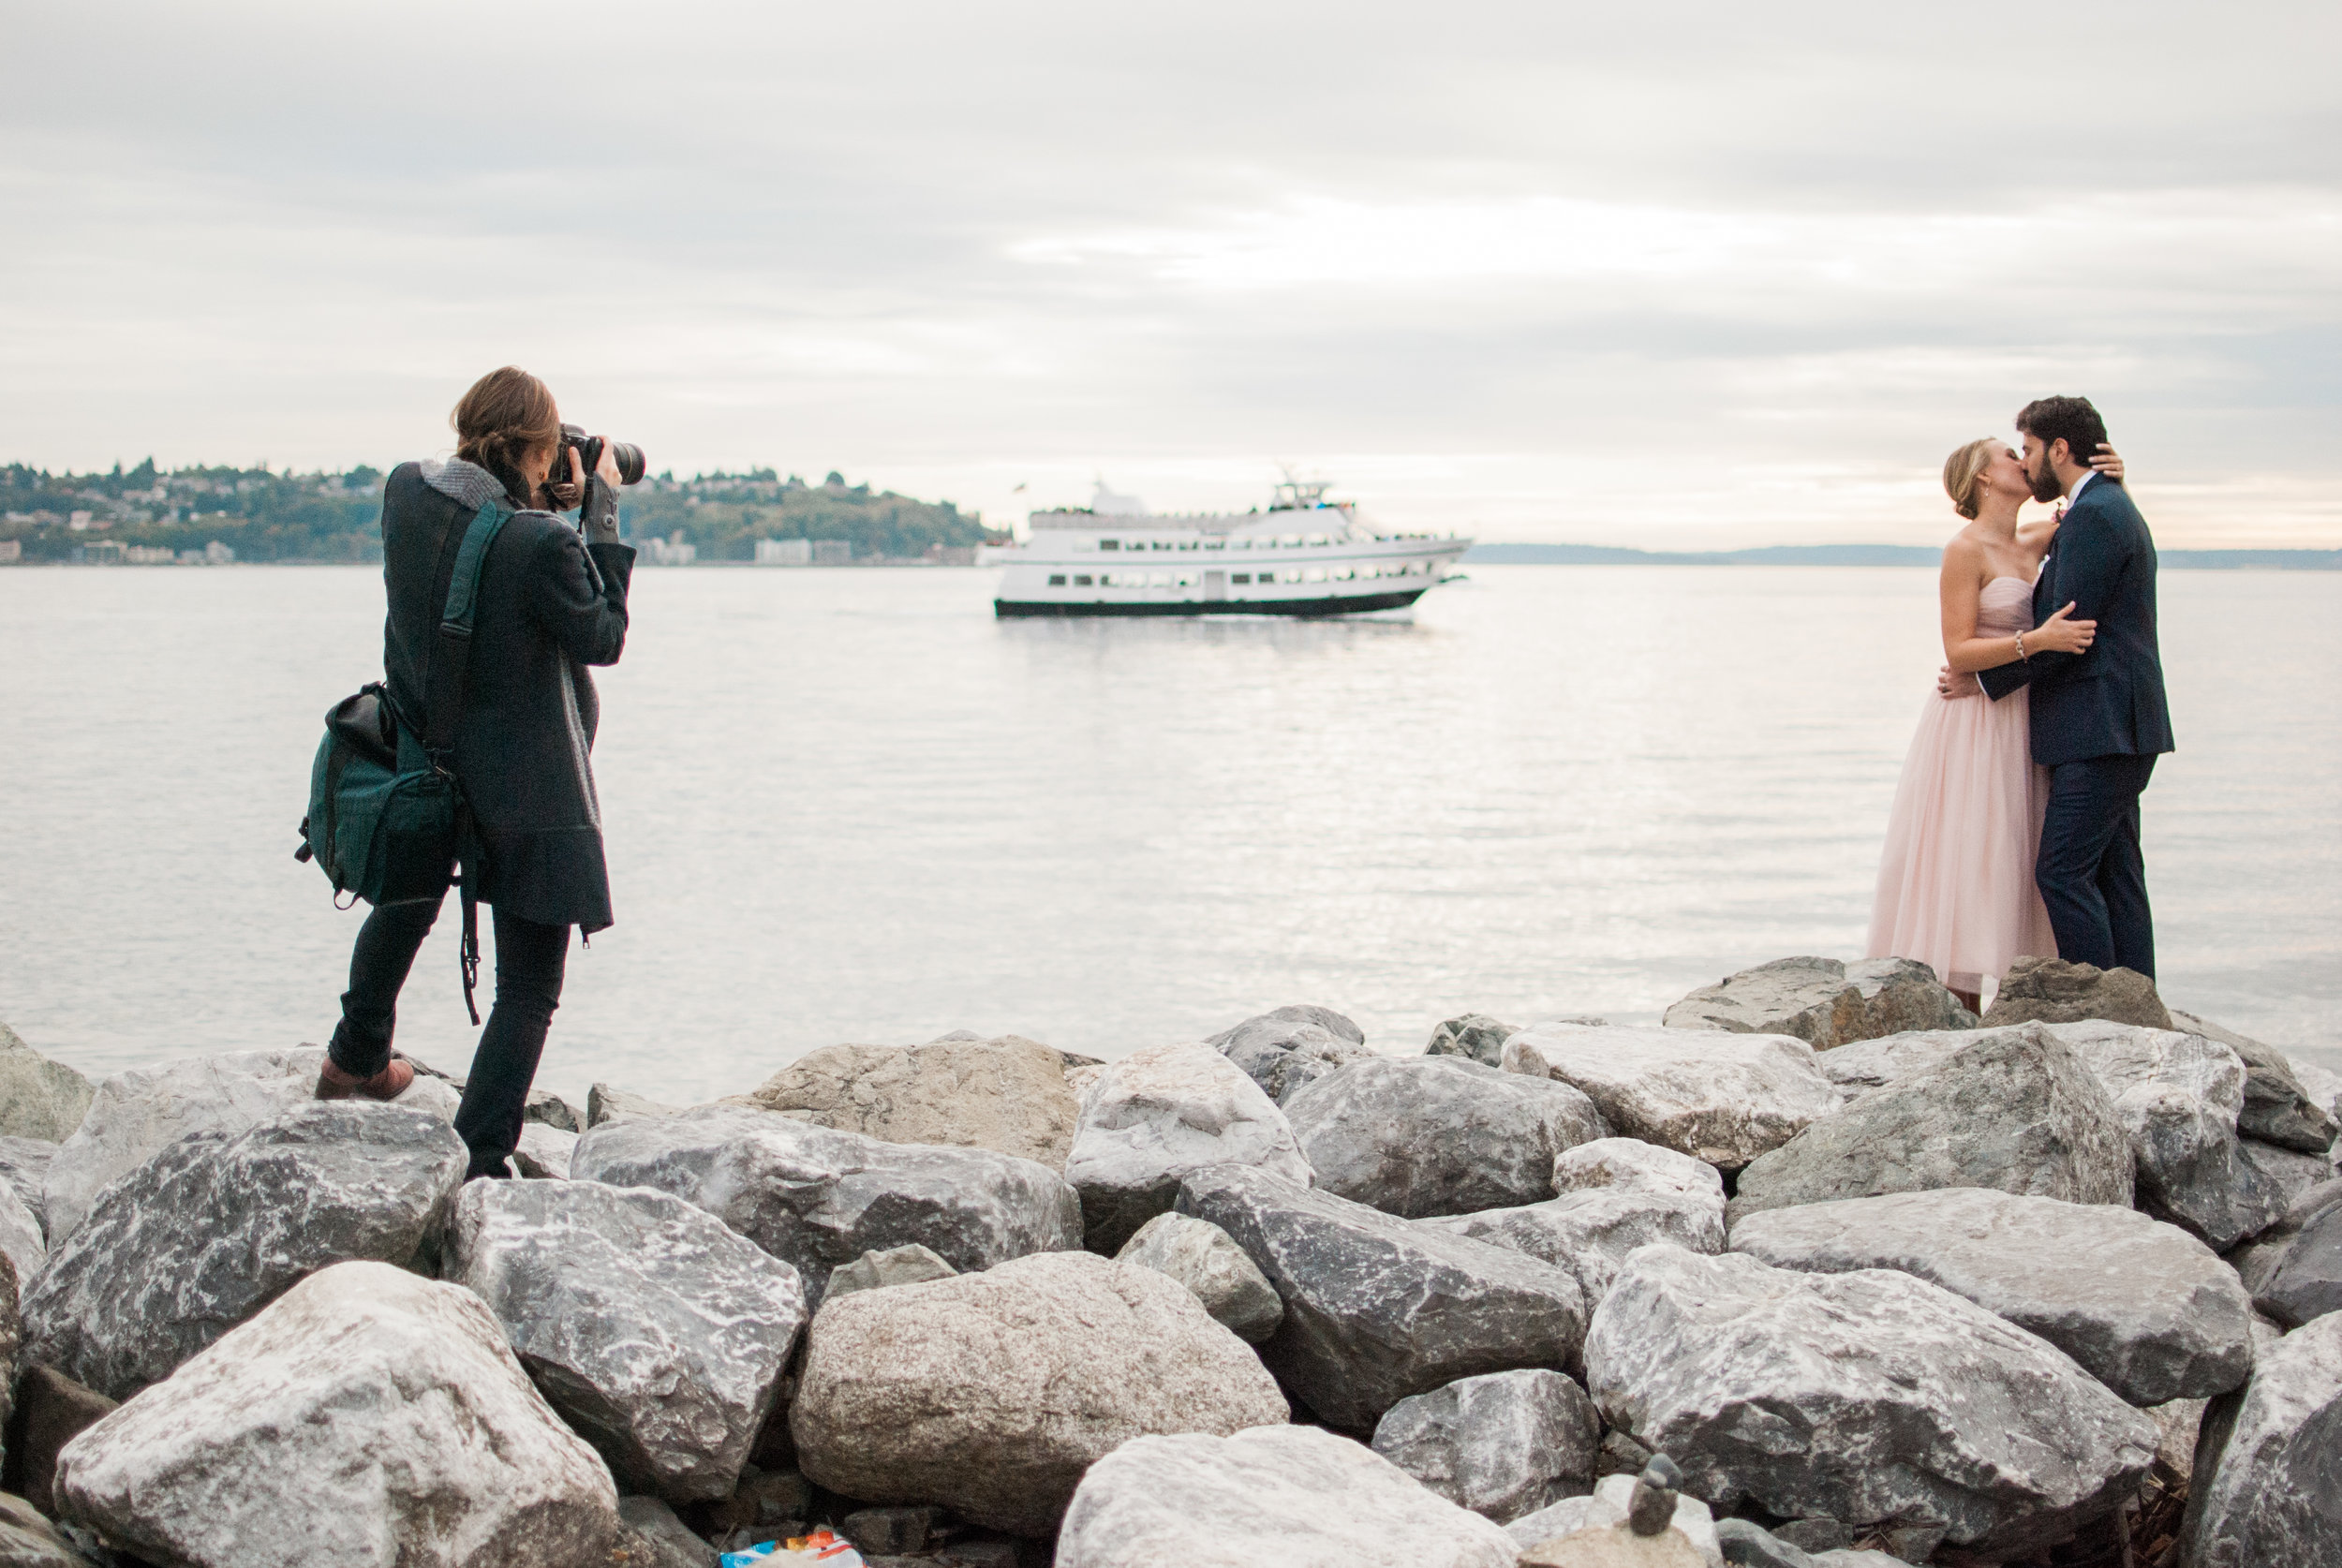 Here I am back in 2015 photographing the most Seattle-y wedding ever (I mean, come on now, there's even a ferry)!